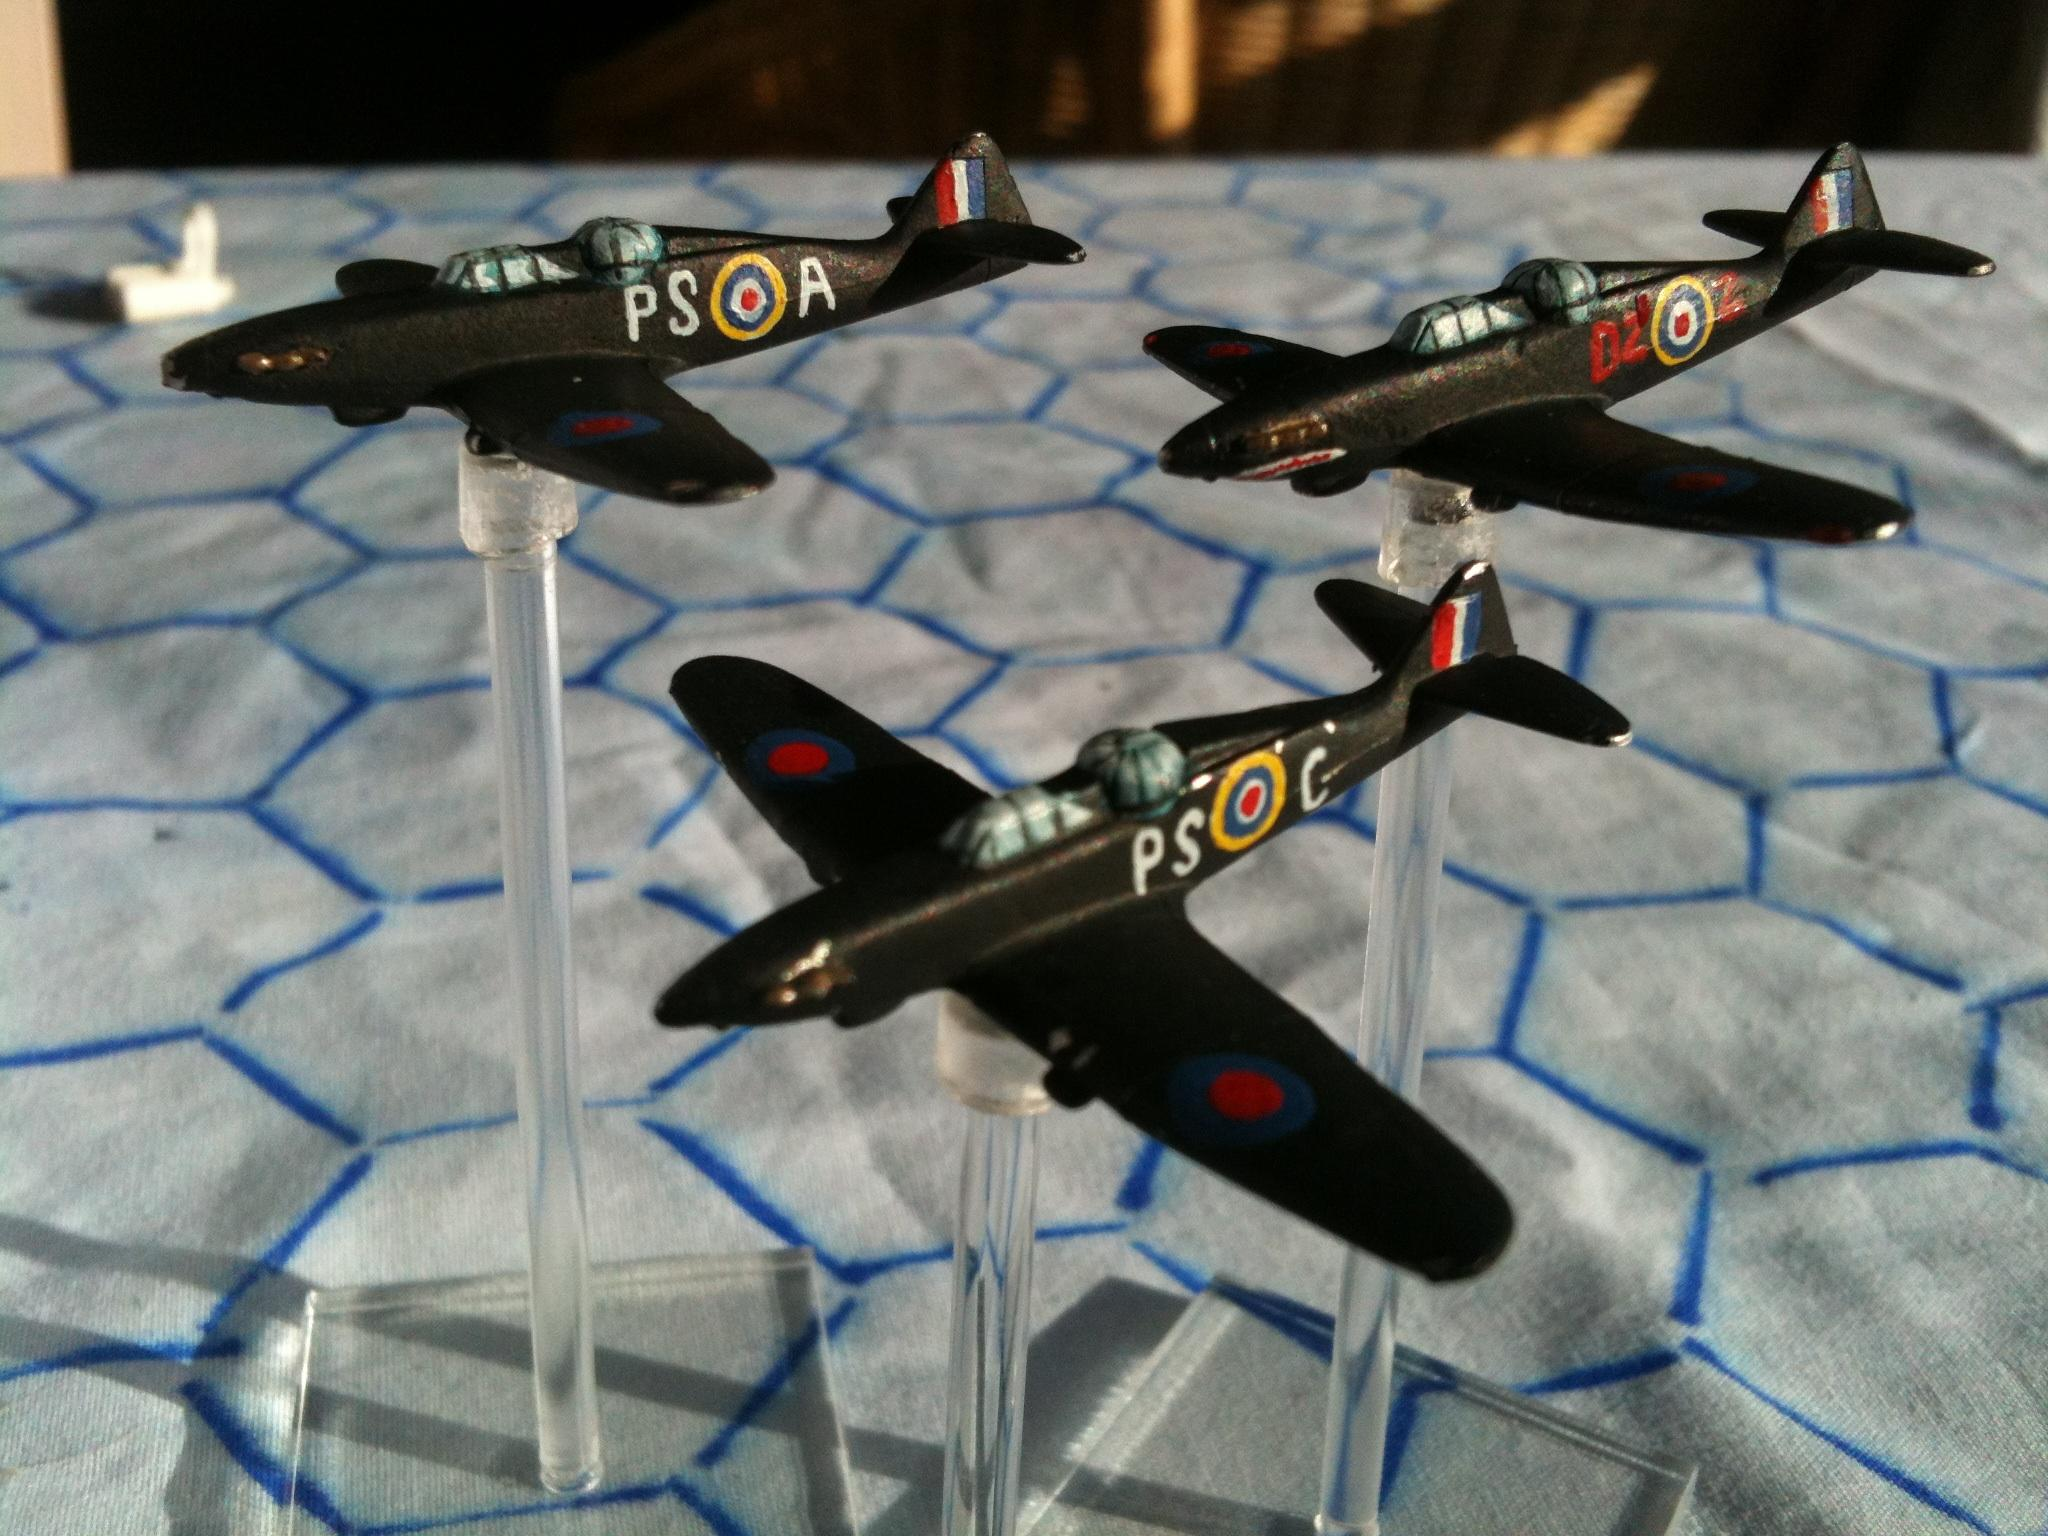 1:300, 1:300 Scale, 6mm, 6mm Scale, Air Combat, Airborne, Aircraft, Airplane, Aviation, British, Check Your 6!, Fighters, Finland, Fliers, French, Germans, Imperial Japan, Italian, Luftwaffe, Planes, Raf, Republic Of China, Soviet, Usaaf, World War 2